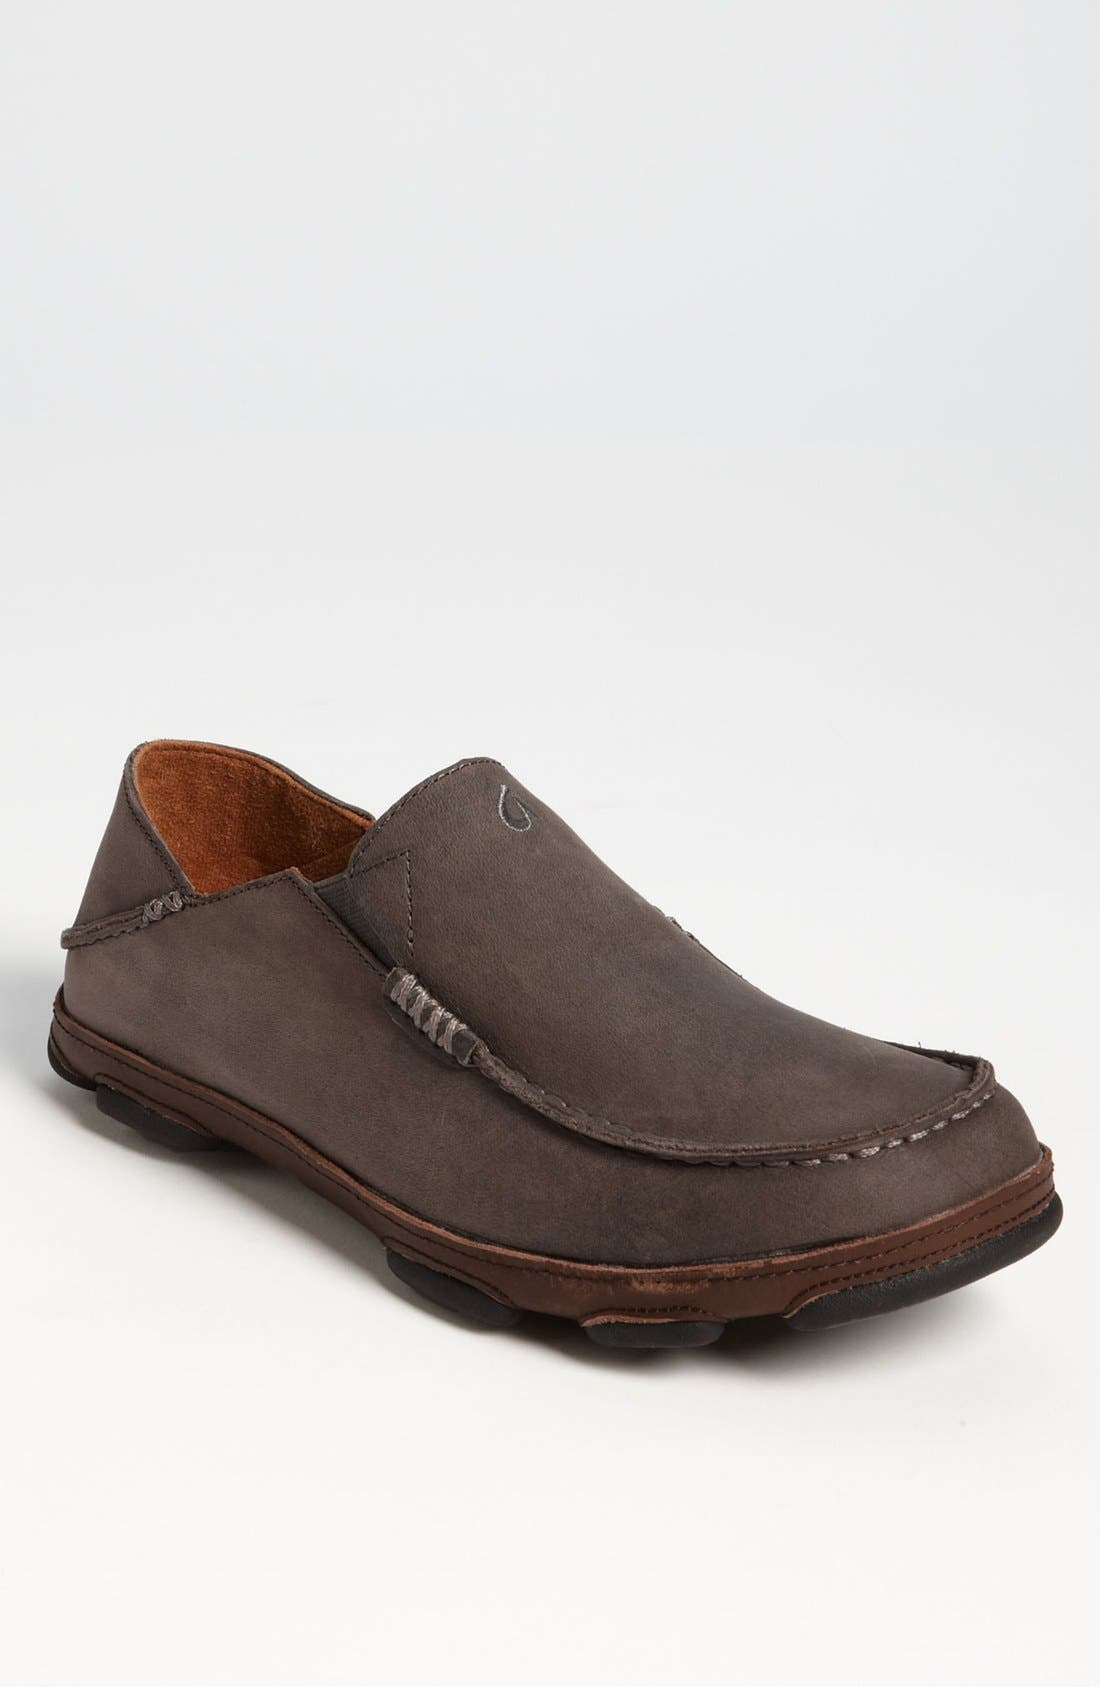 Moloa Slip-On,                             Main thumbnail 1, color,                             STORM GREY/ DARK WOOD